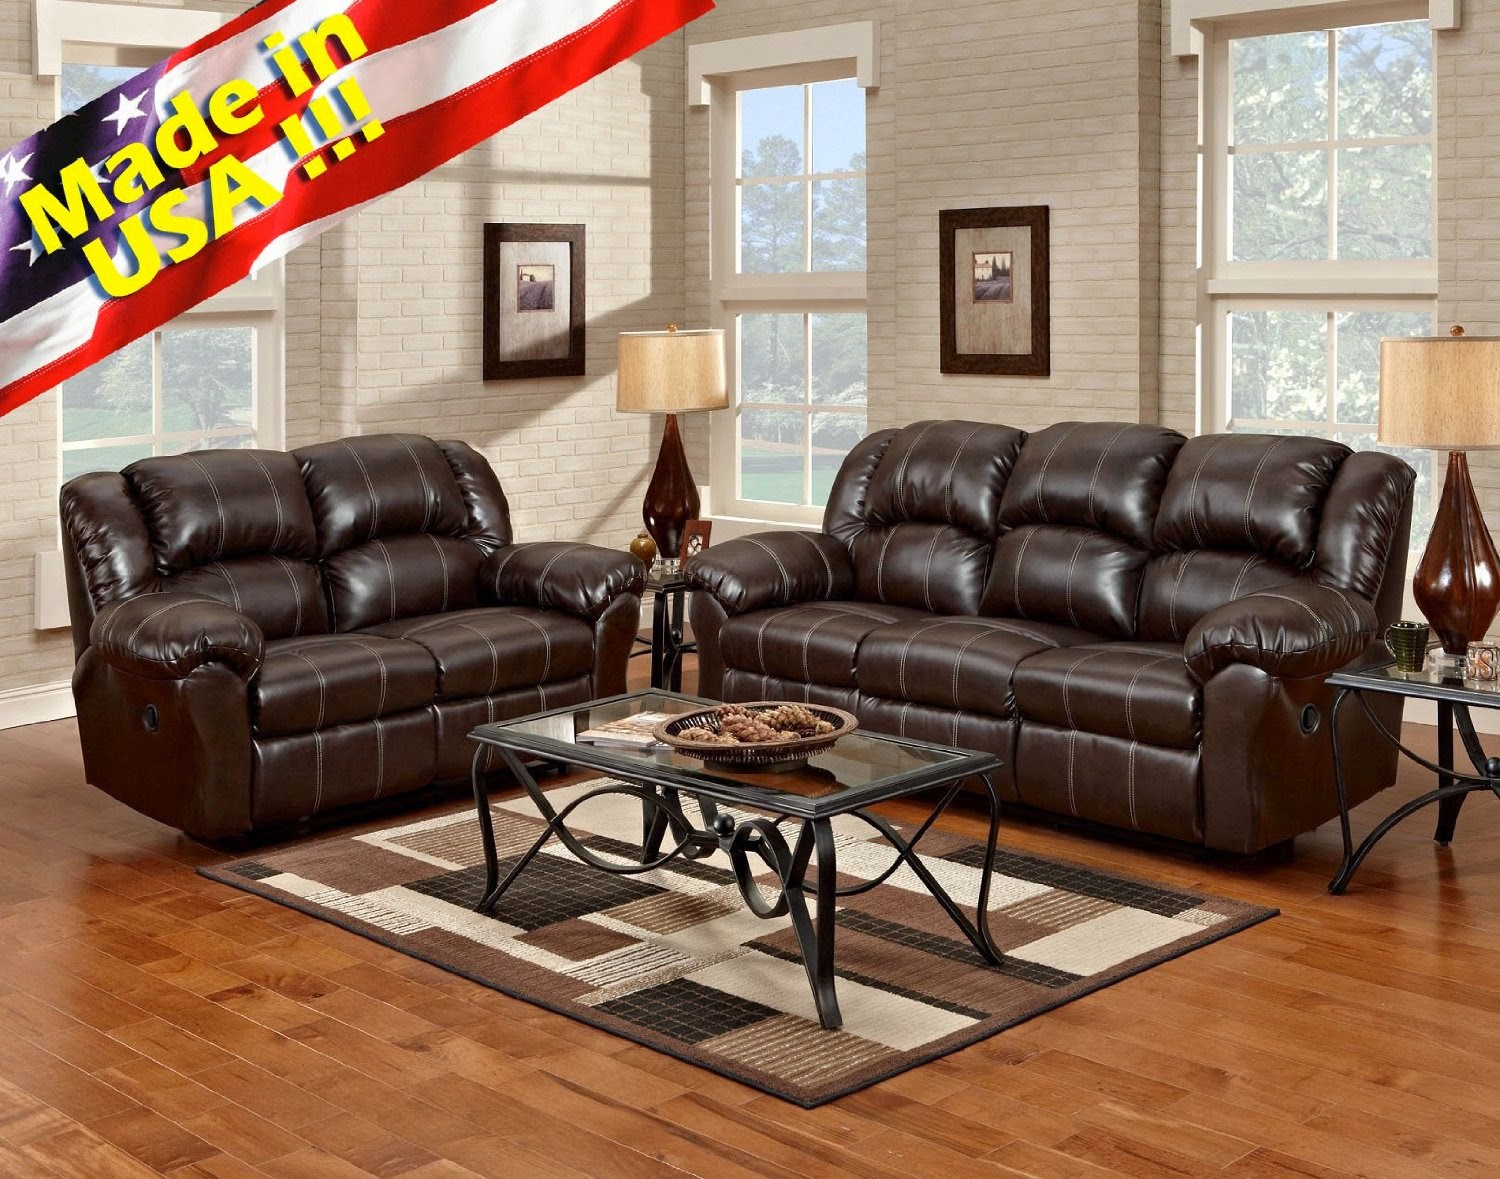 Bryce white italian leather sofa and loveseat 15814565 overstock -  Roundhill Leather Dual Reclining Sofa And Loveseat